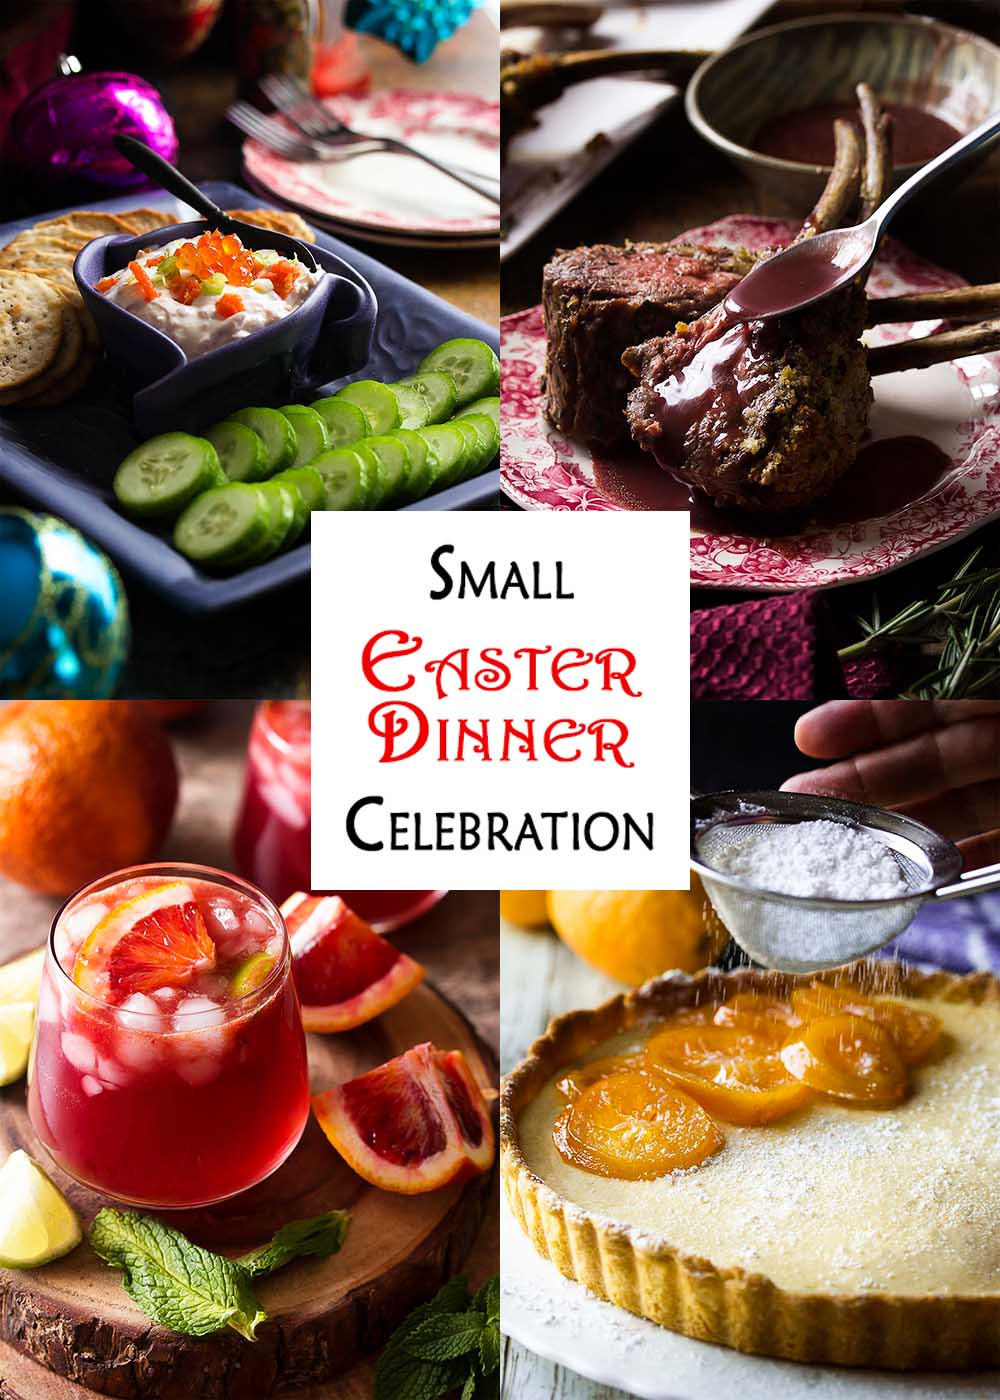 Collage of four recipes with text overlay - Small Easter DInner Celebration.